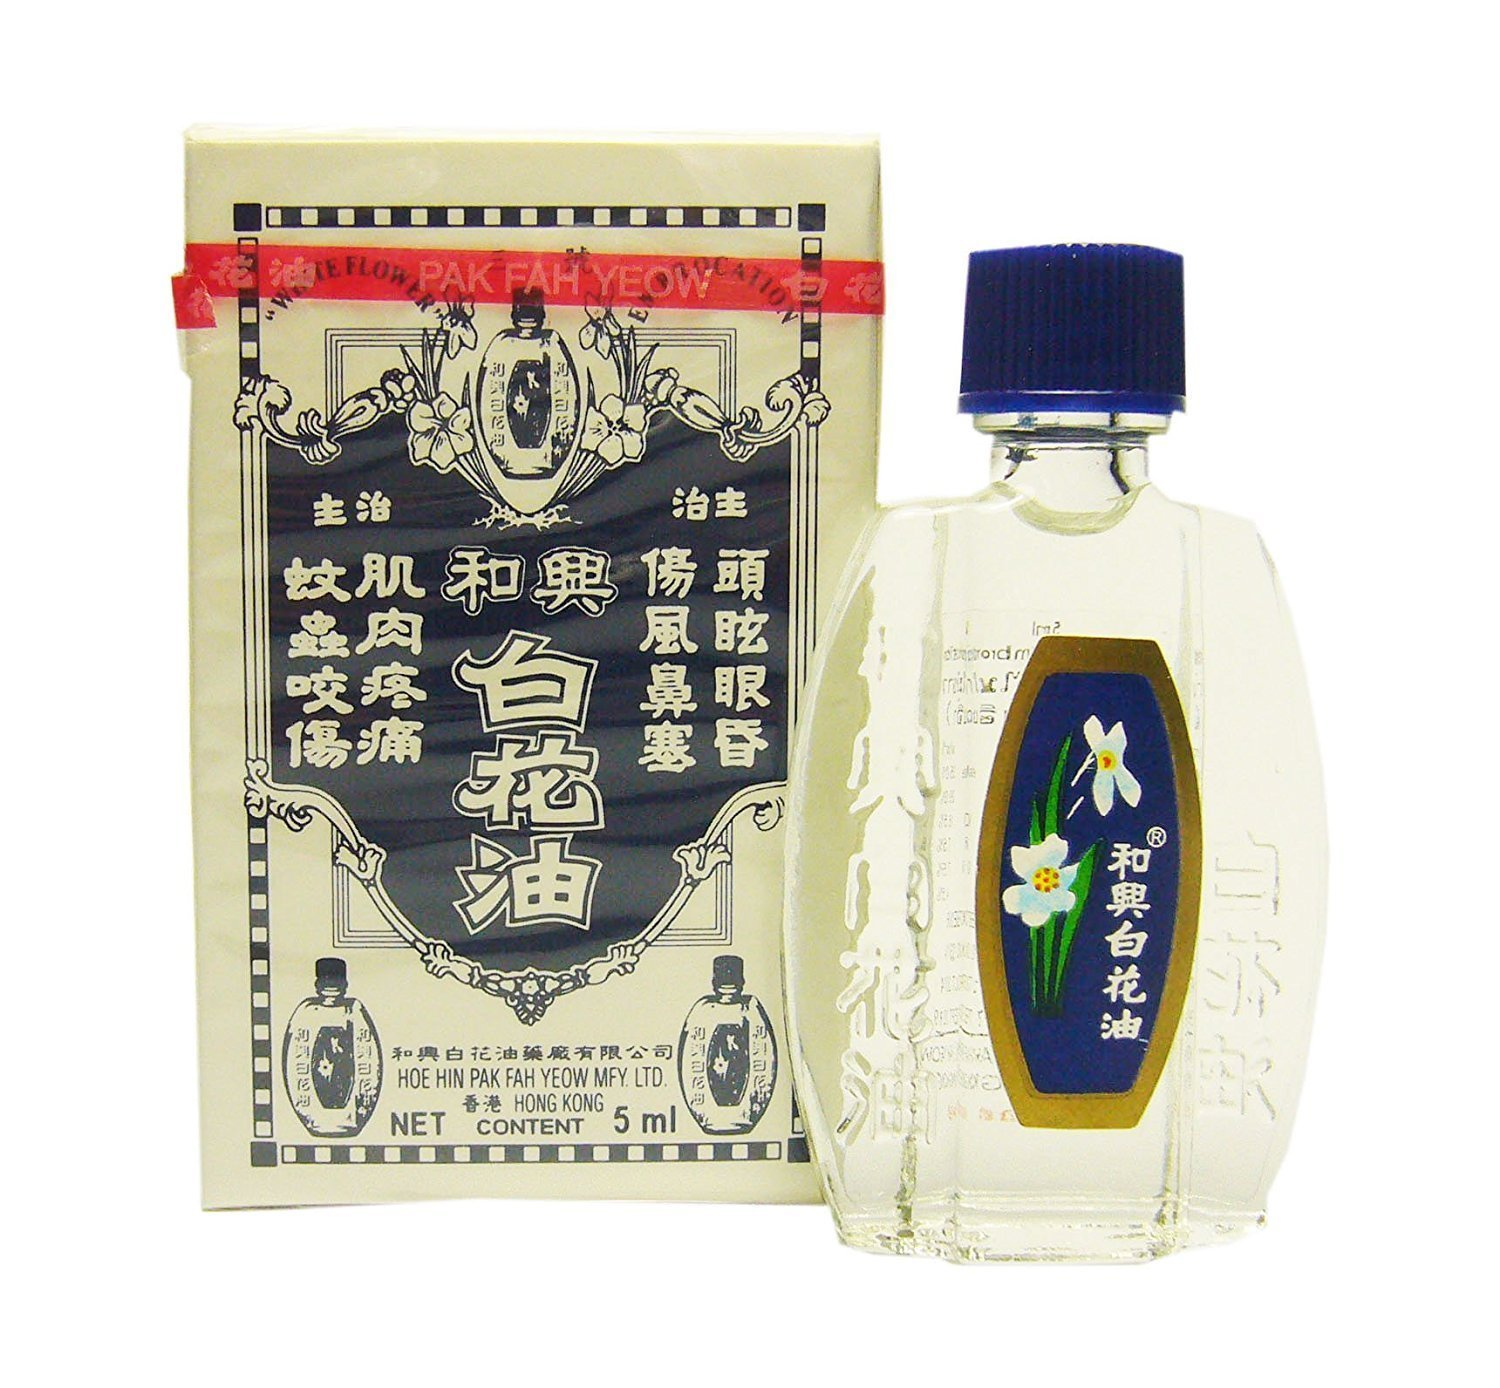 White flower oil uses images flower decoration ideas unique chinese white flower oil uses photo best evening gown white flower oil uses choice image mightylinksfo